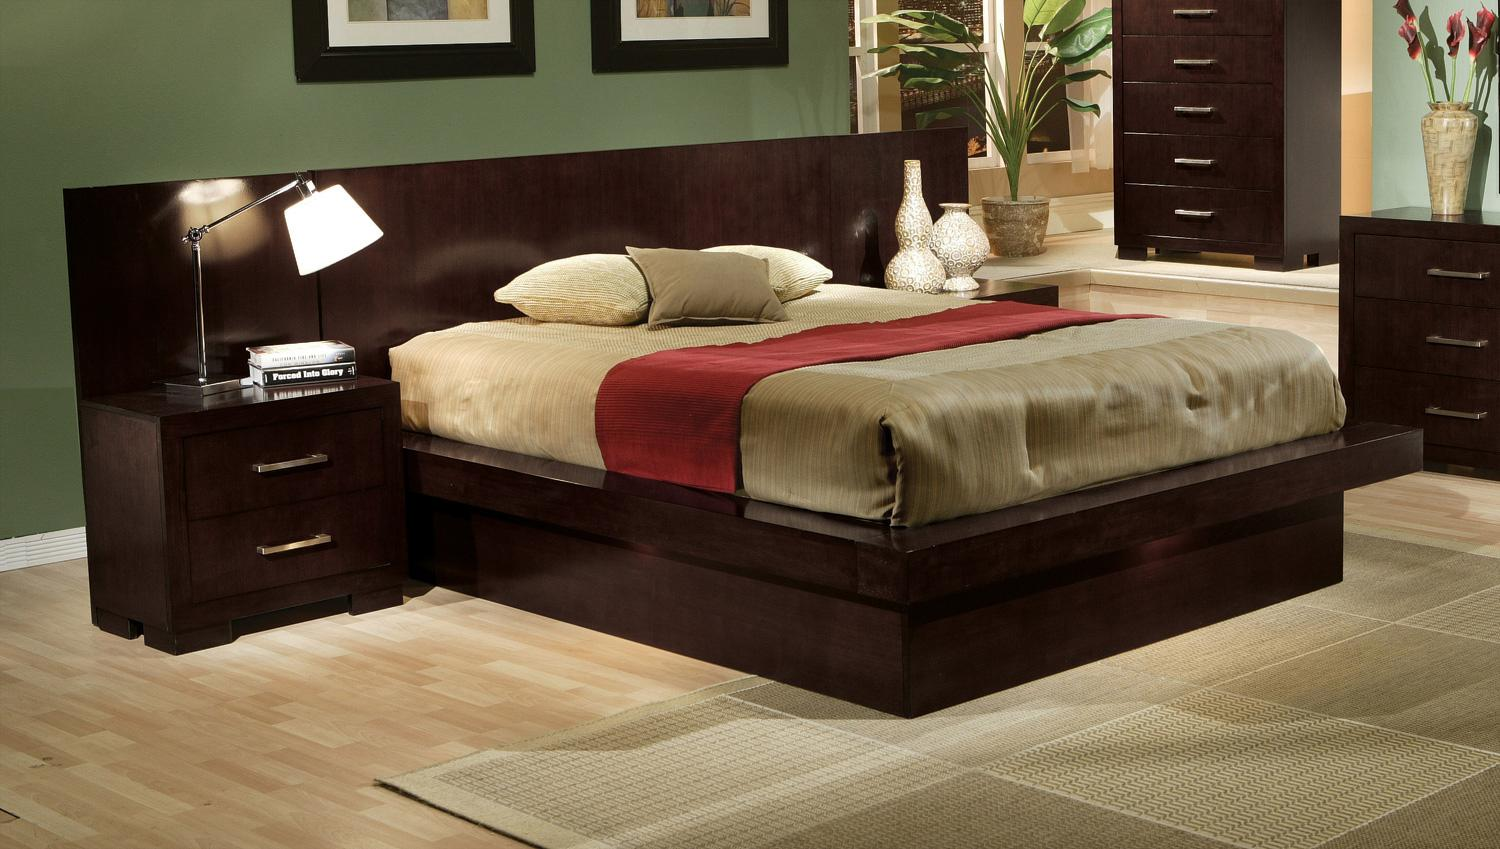 Fine Furniture Jessica King Pier Platform Bed With Rail